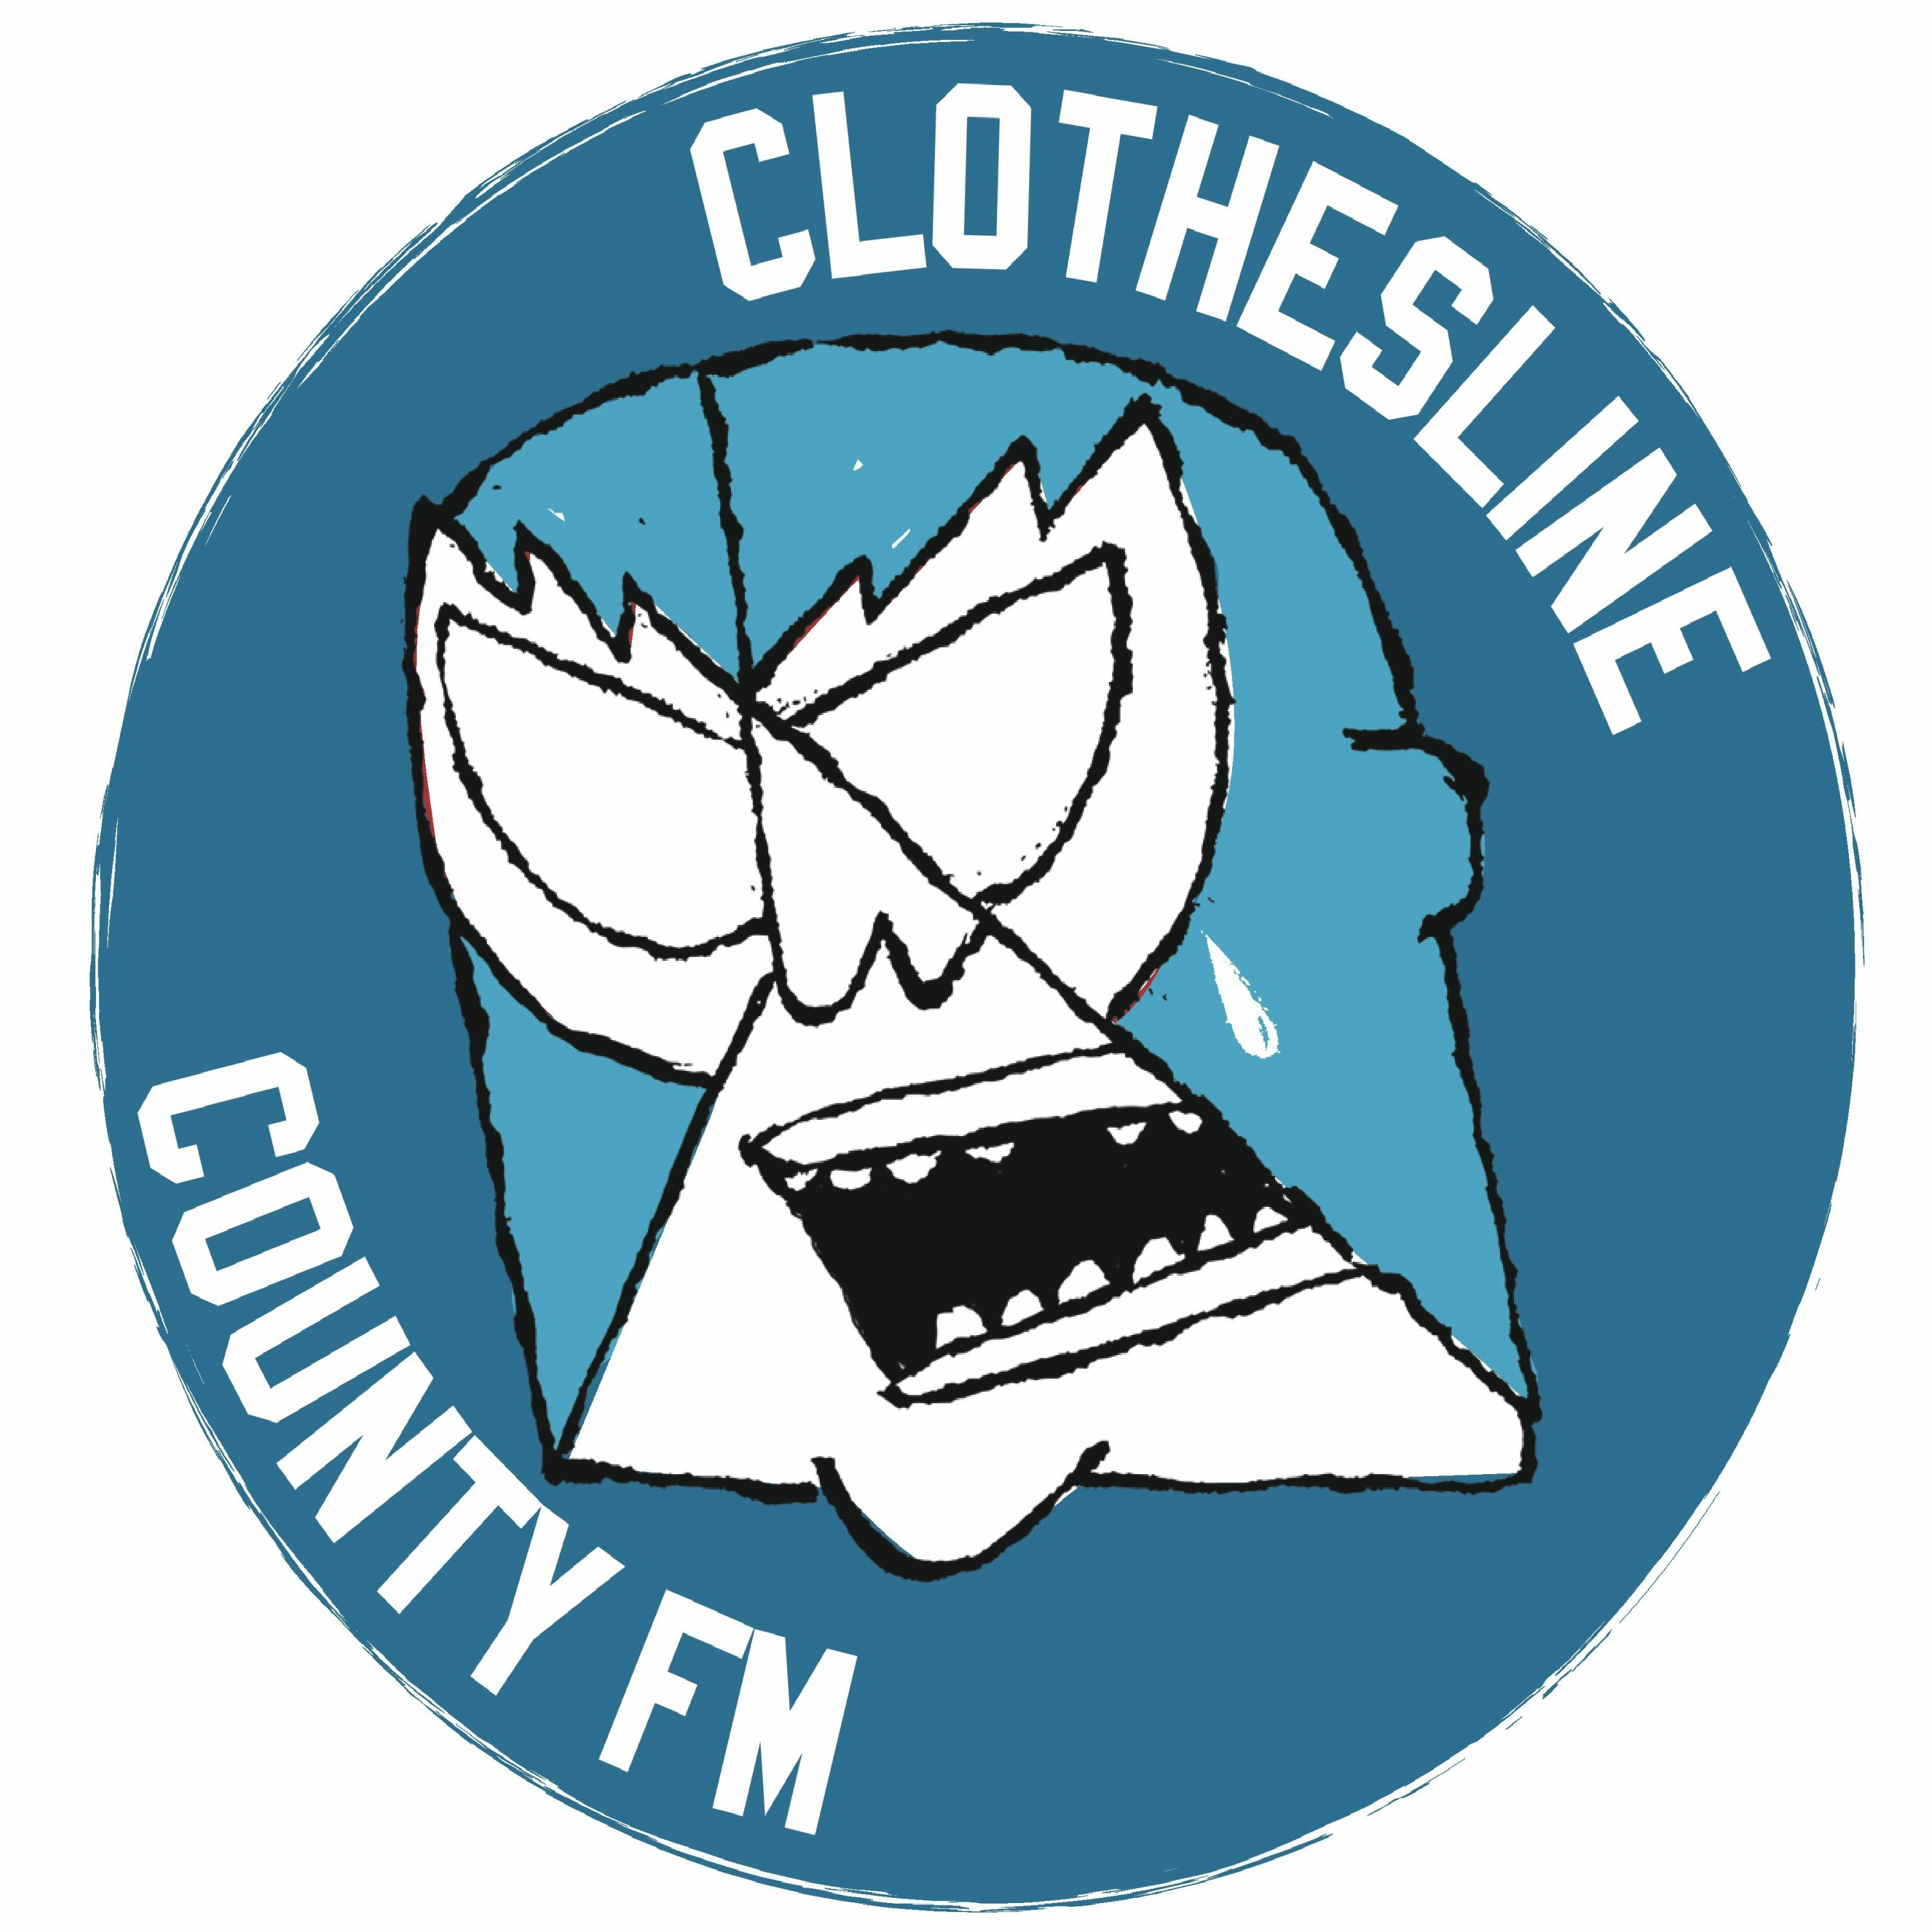 Clothesline County FM